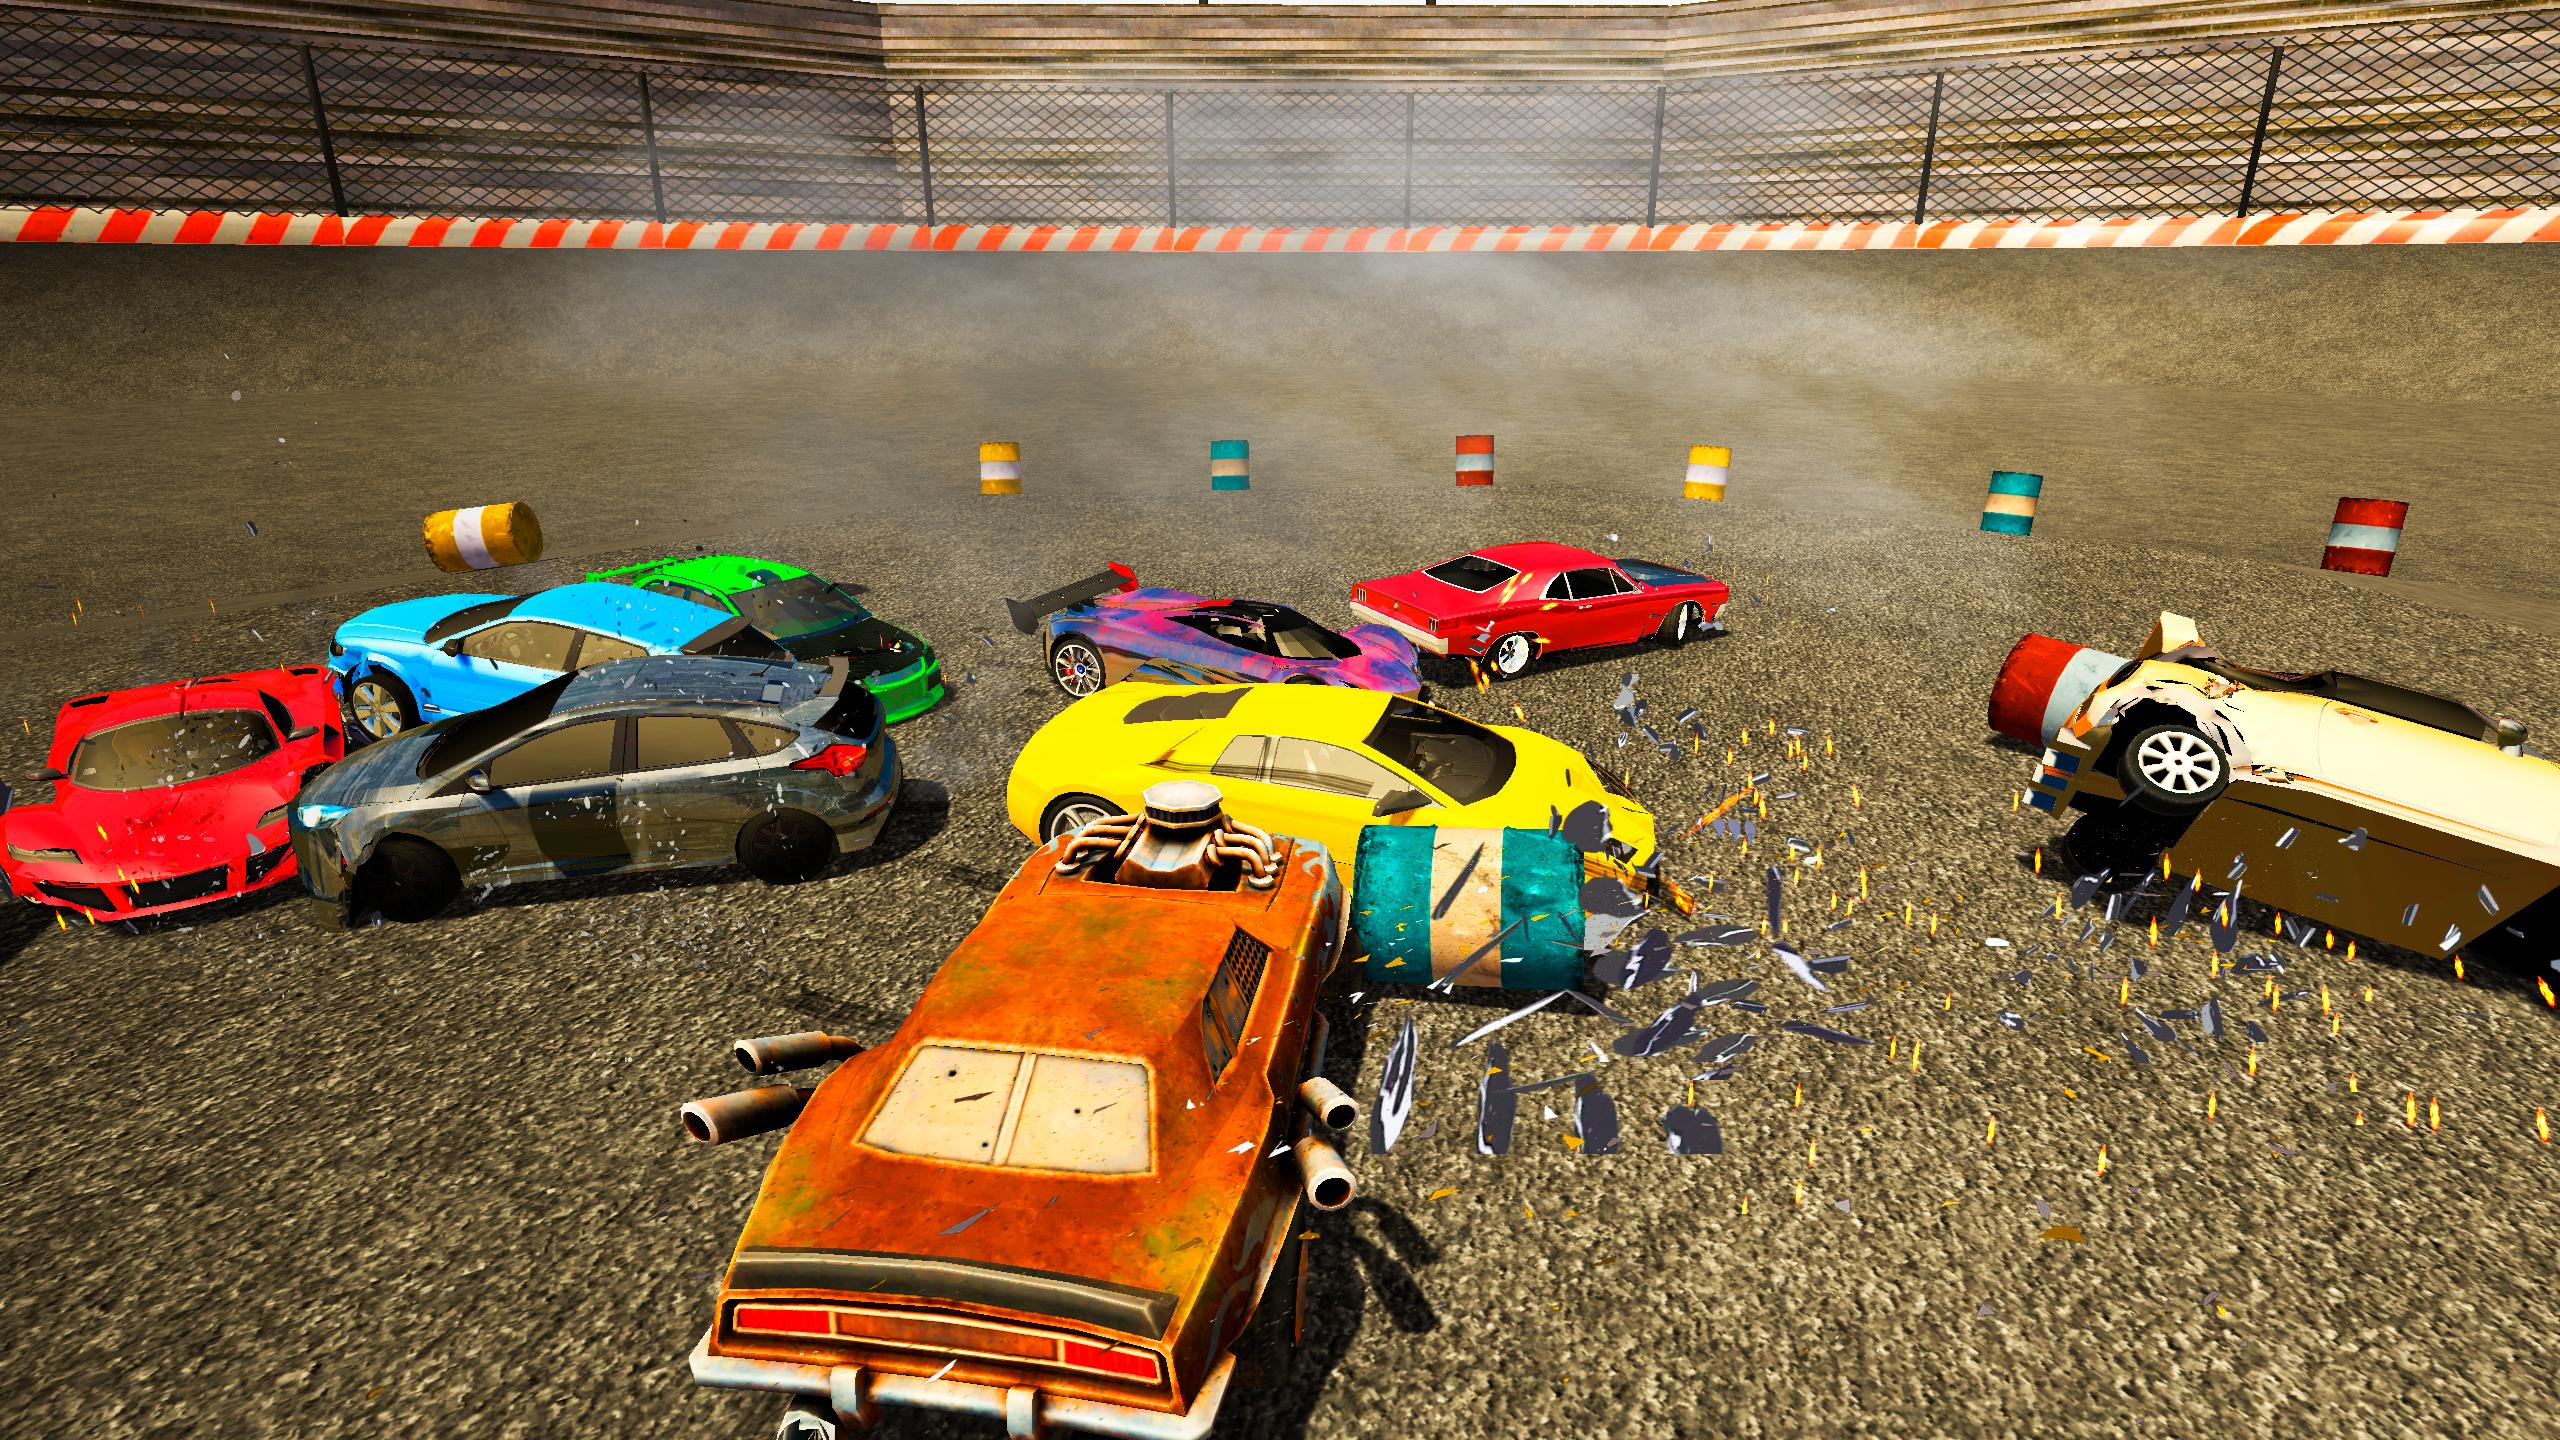 derby destruction simulator hile - Derby Destruction Simulator Apk indir - Para Hileli Mod v3.0.5